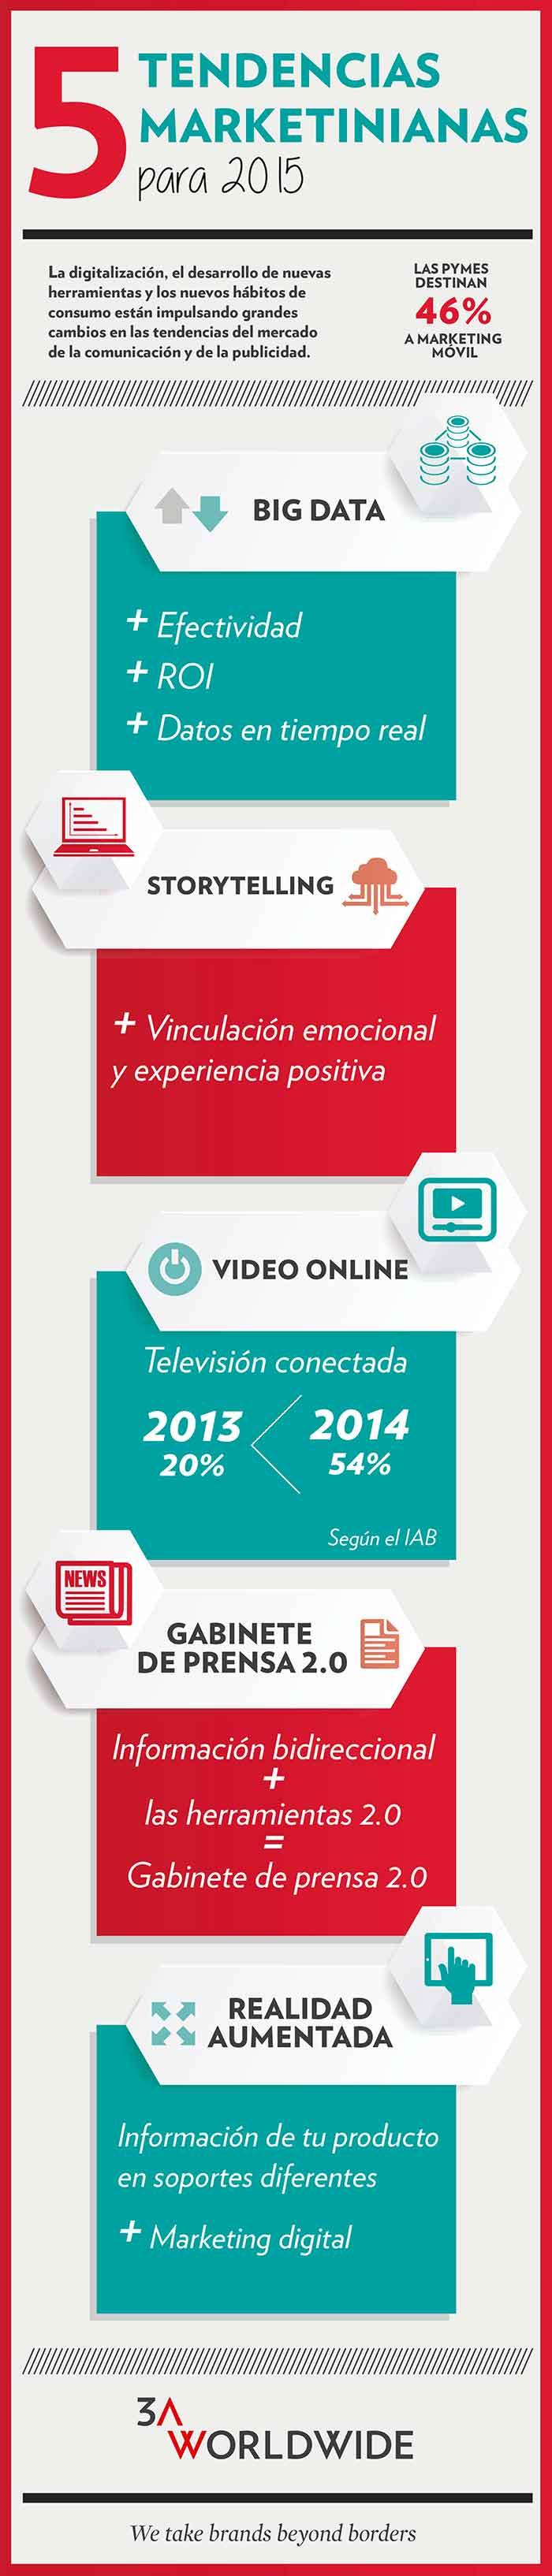 Infografia sobre las tendencias marketinianas para 2015